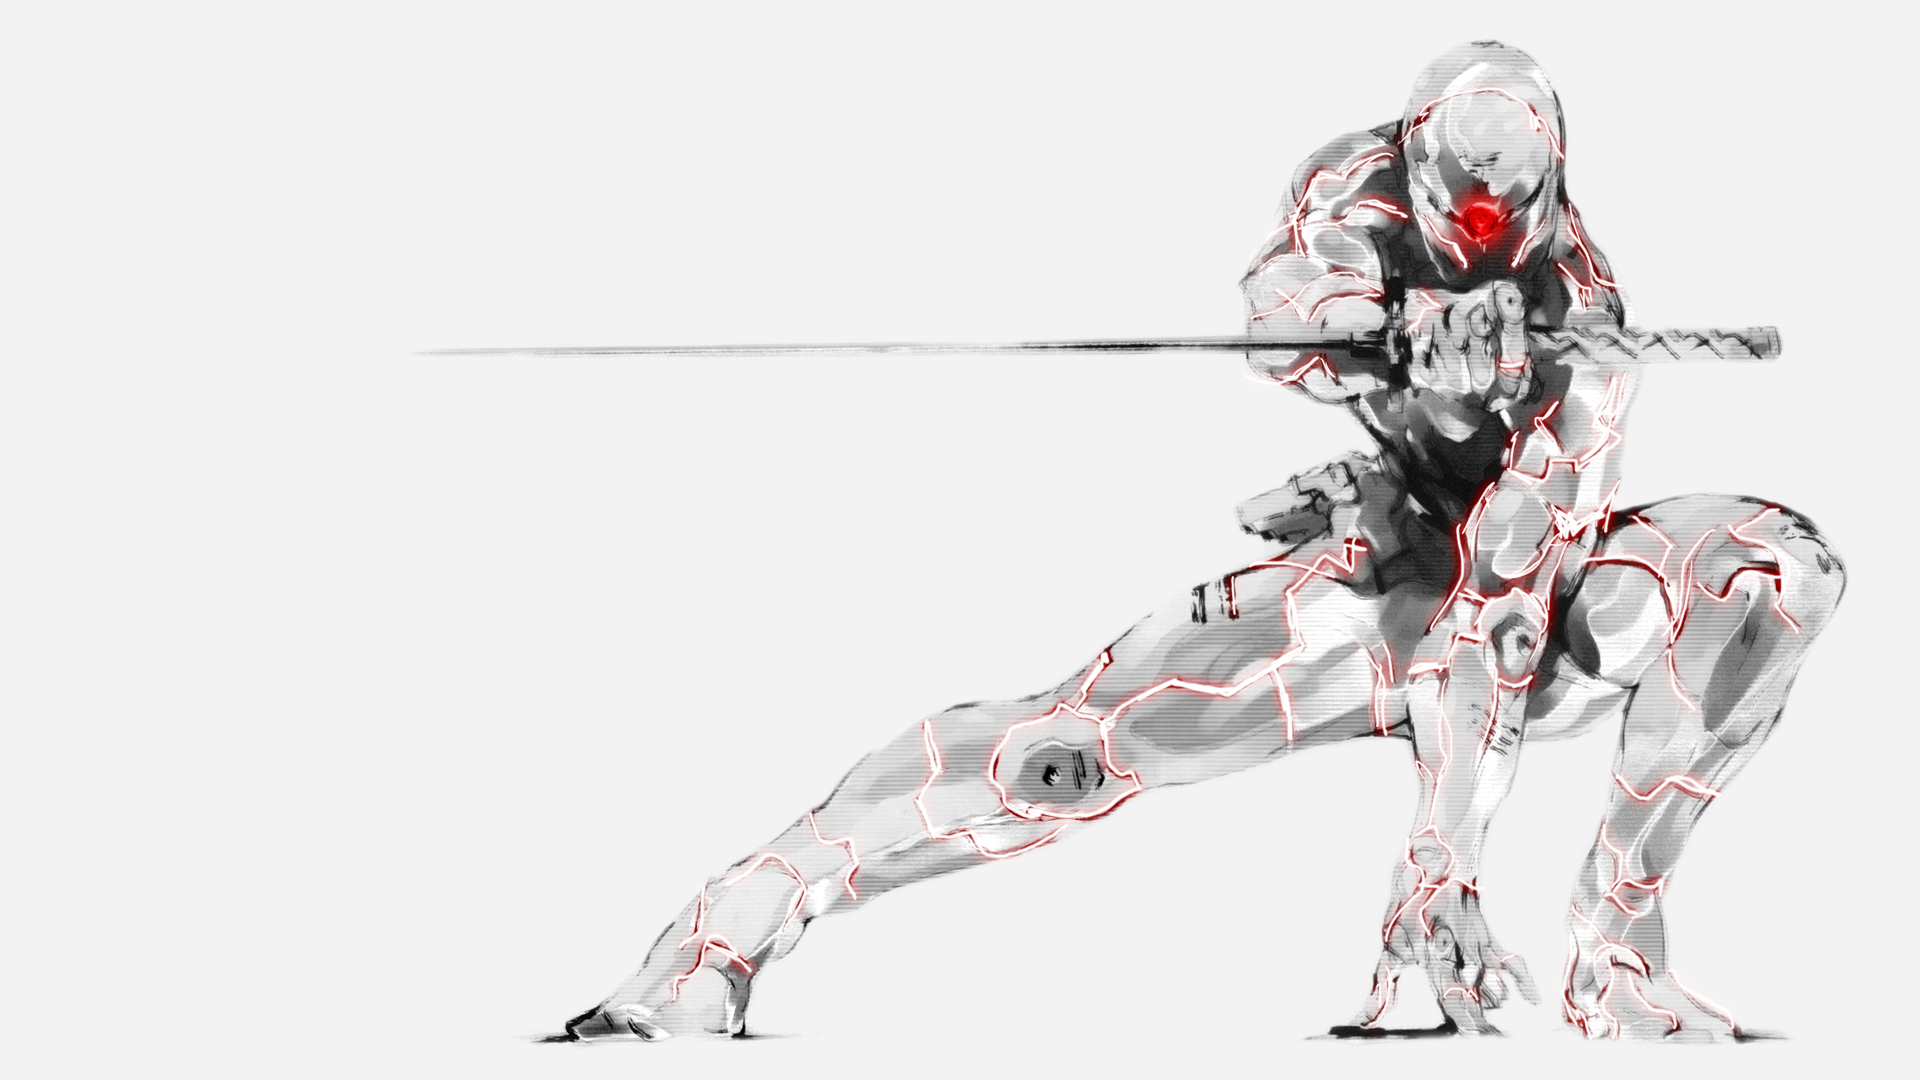 metal Gear solid gray HD Wallpaper